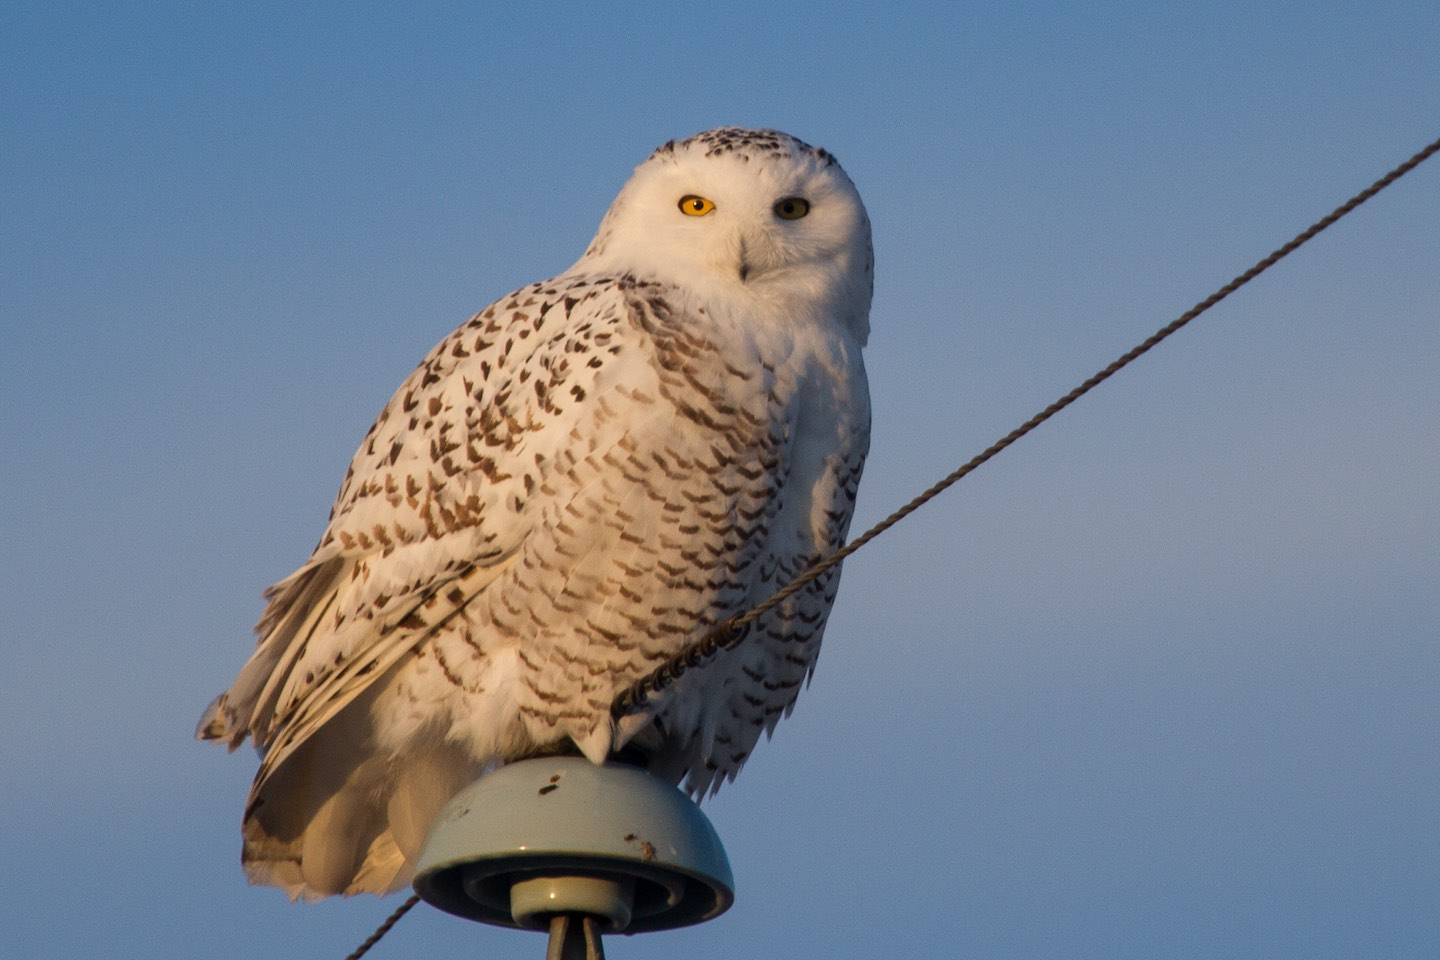 Snowy owl (Photo: David A Mitchell (https://www.flickr.com/photos/firstmac/6692145389/), used under Attribution 2.0 Generic (CC BY 2.0) license https://creativecommons.org/licenses/by/2.0/)